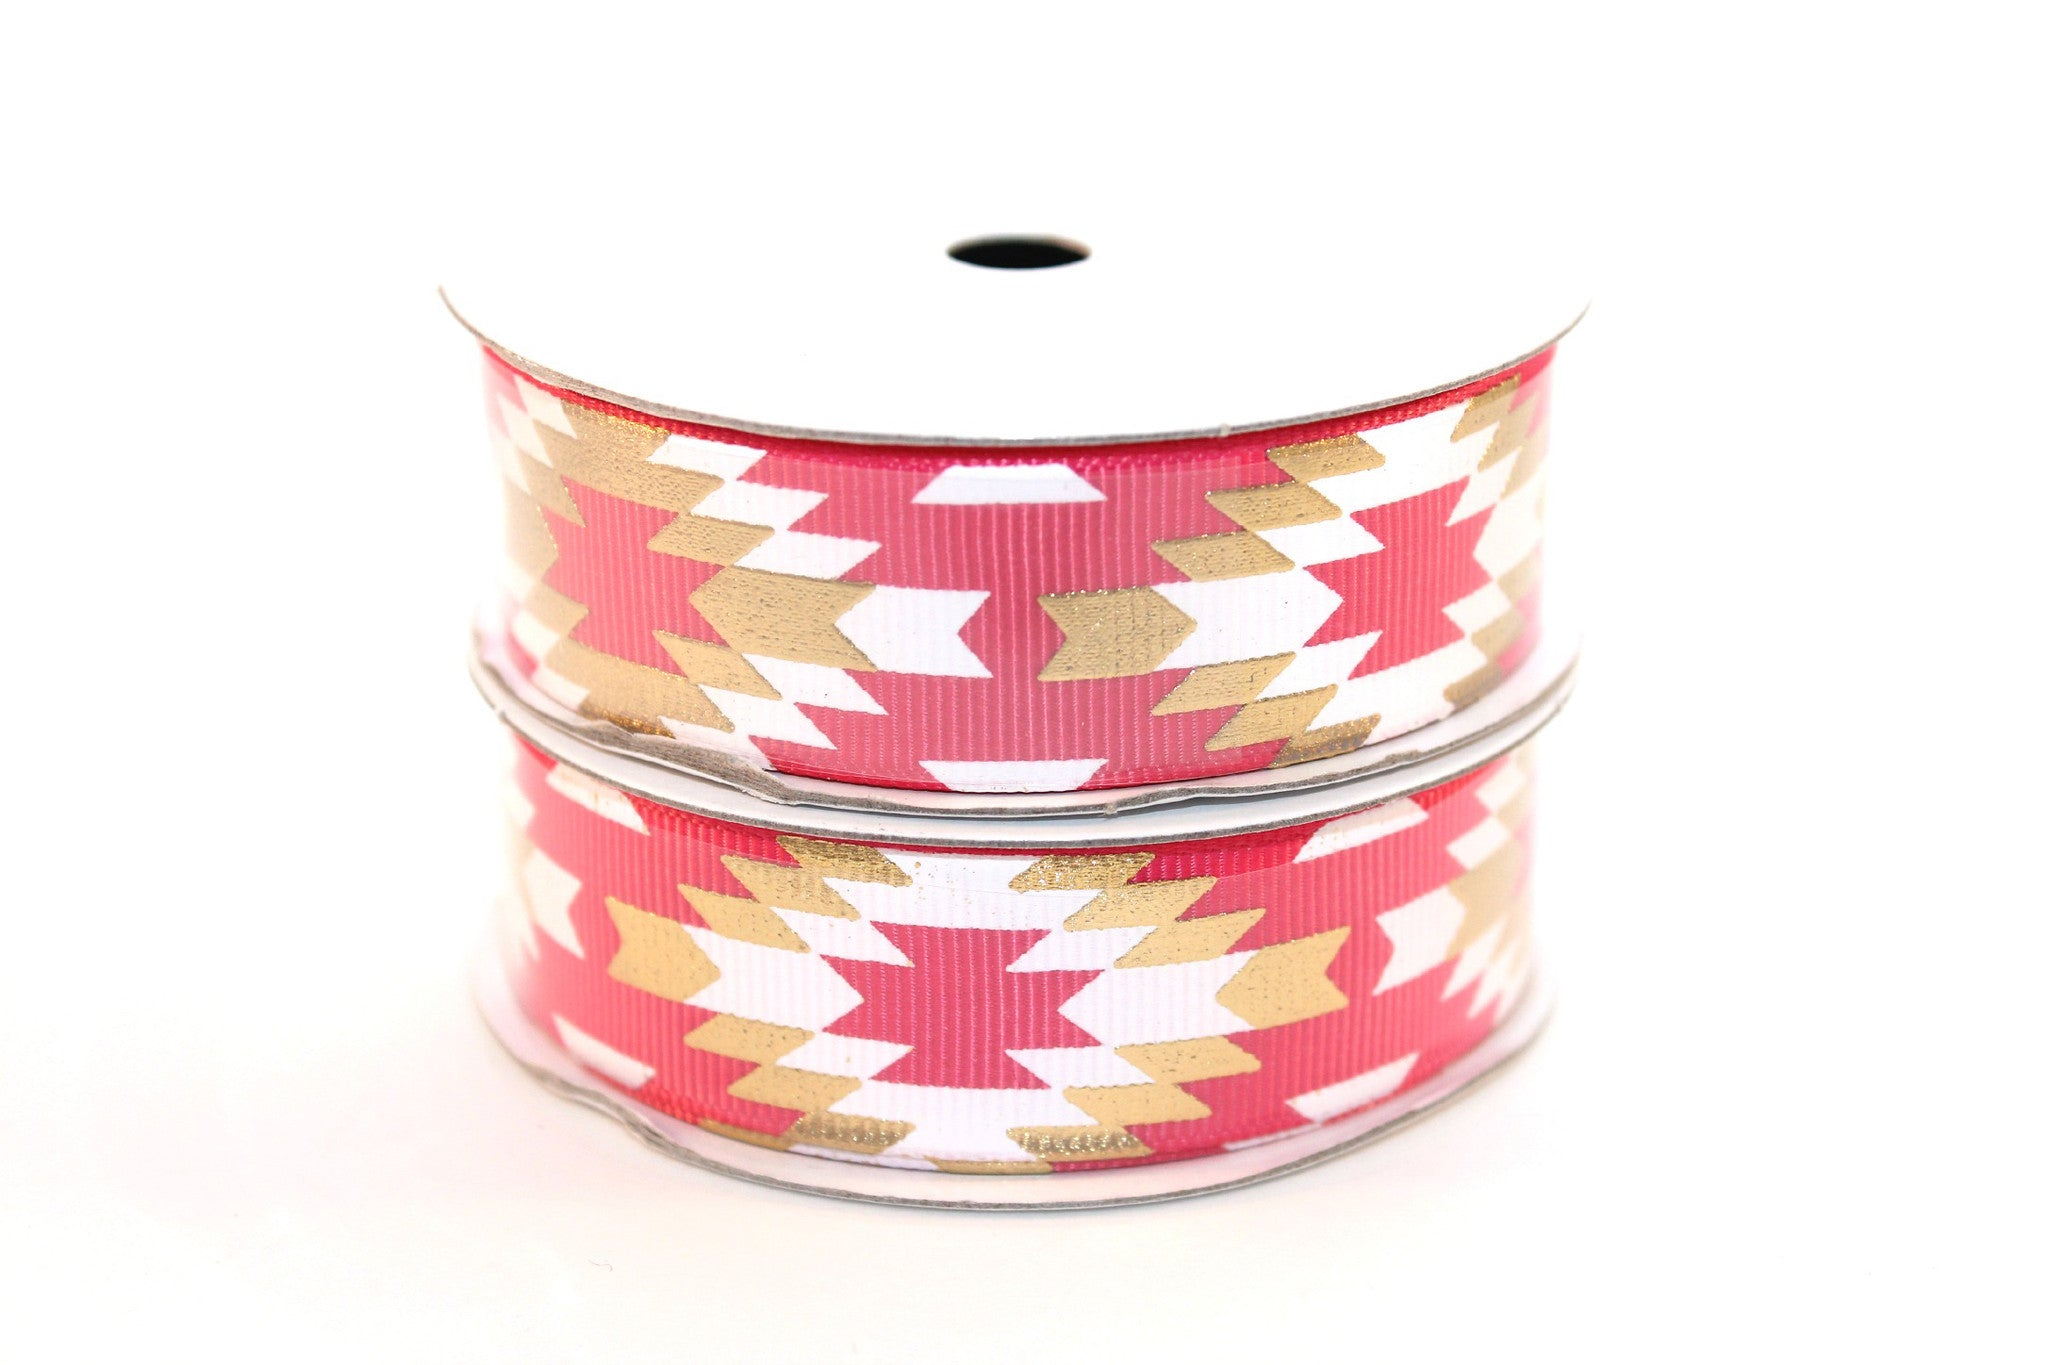 "7/8"" Camellia Rose White/Gold Fashion Aztec Grosgrain Ribbon (5 Yards) - Peak Bloom"